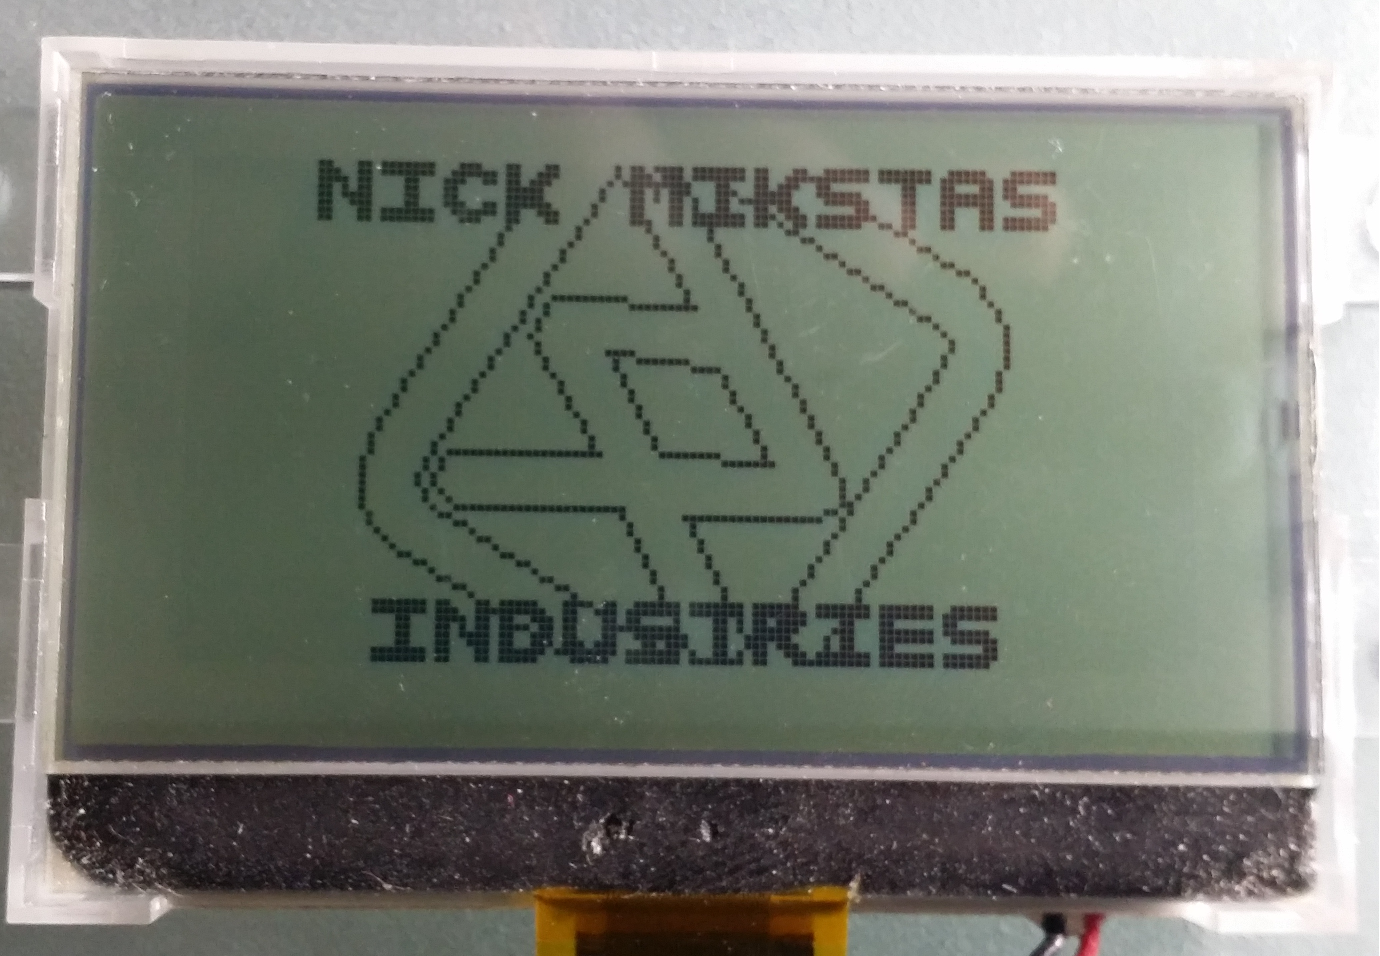 LCD With Graphic Rotating About Z Axis